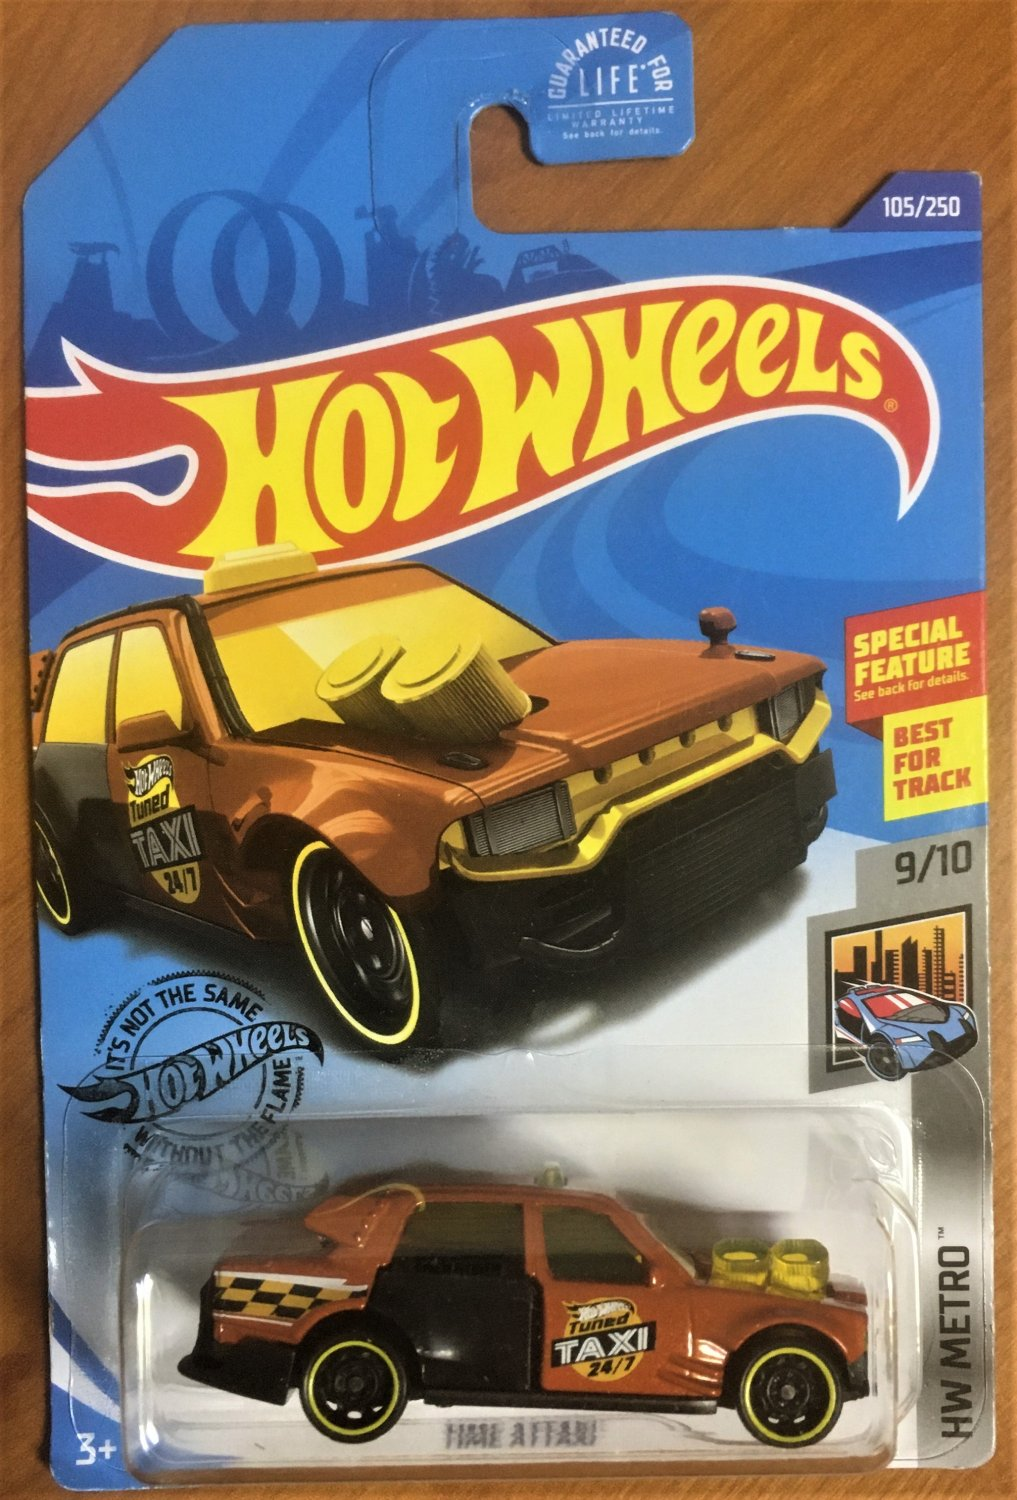 2020 Hot Wheels #105 Time Attaxi